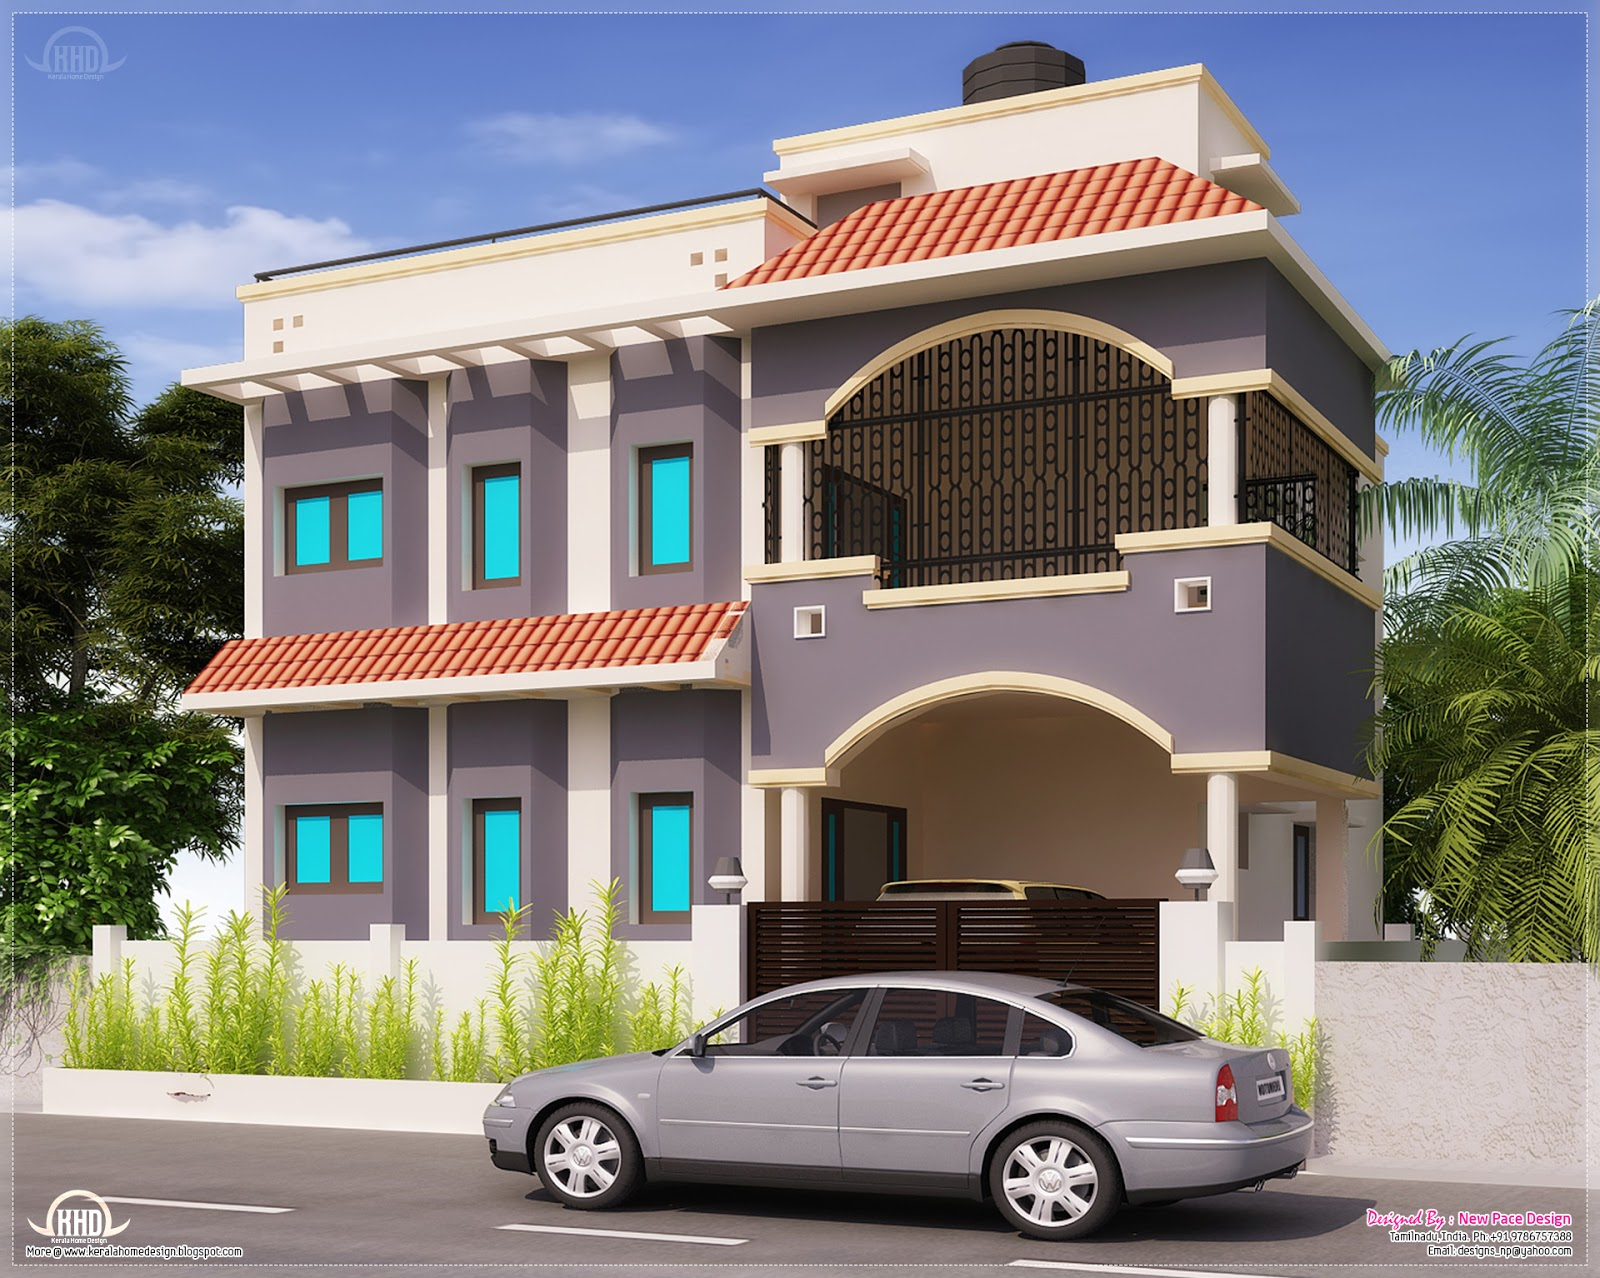 1675 Sqfeet Tamilnadu House Exterior Design Plans